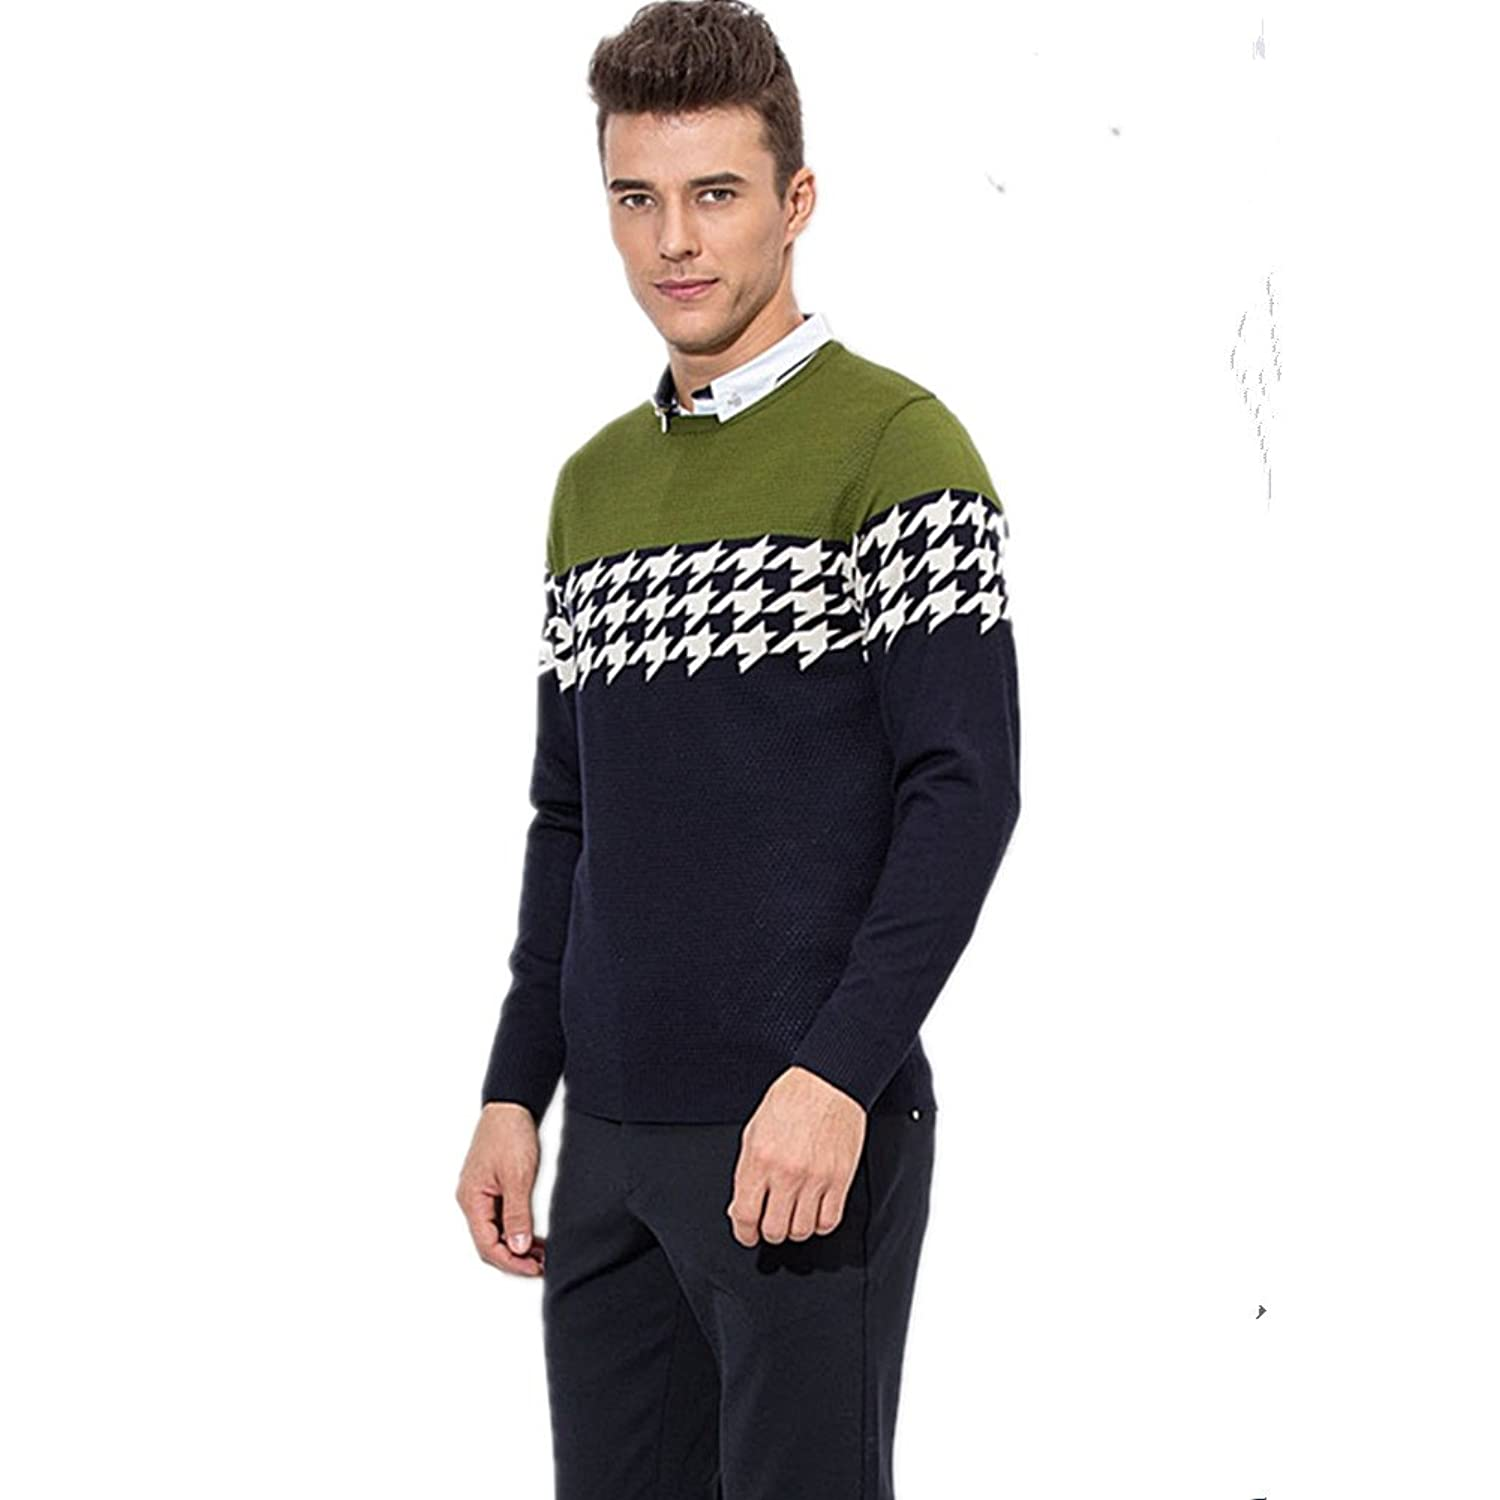 Swing Autumn Winter Men's Wool Blend Fair Isle Crew Sweater jumpers cardigans With Swing Packing Bag